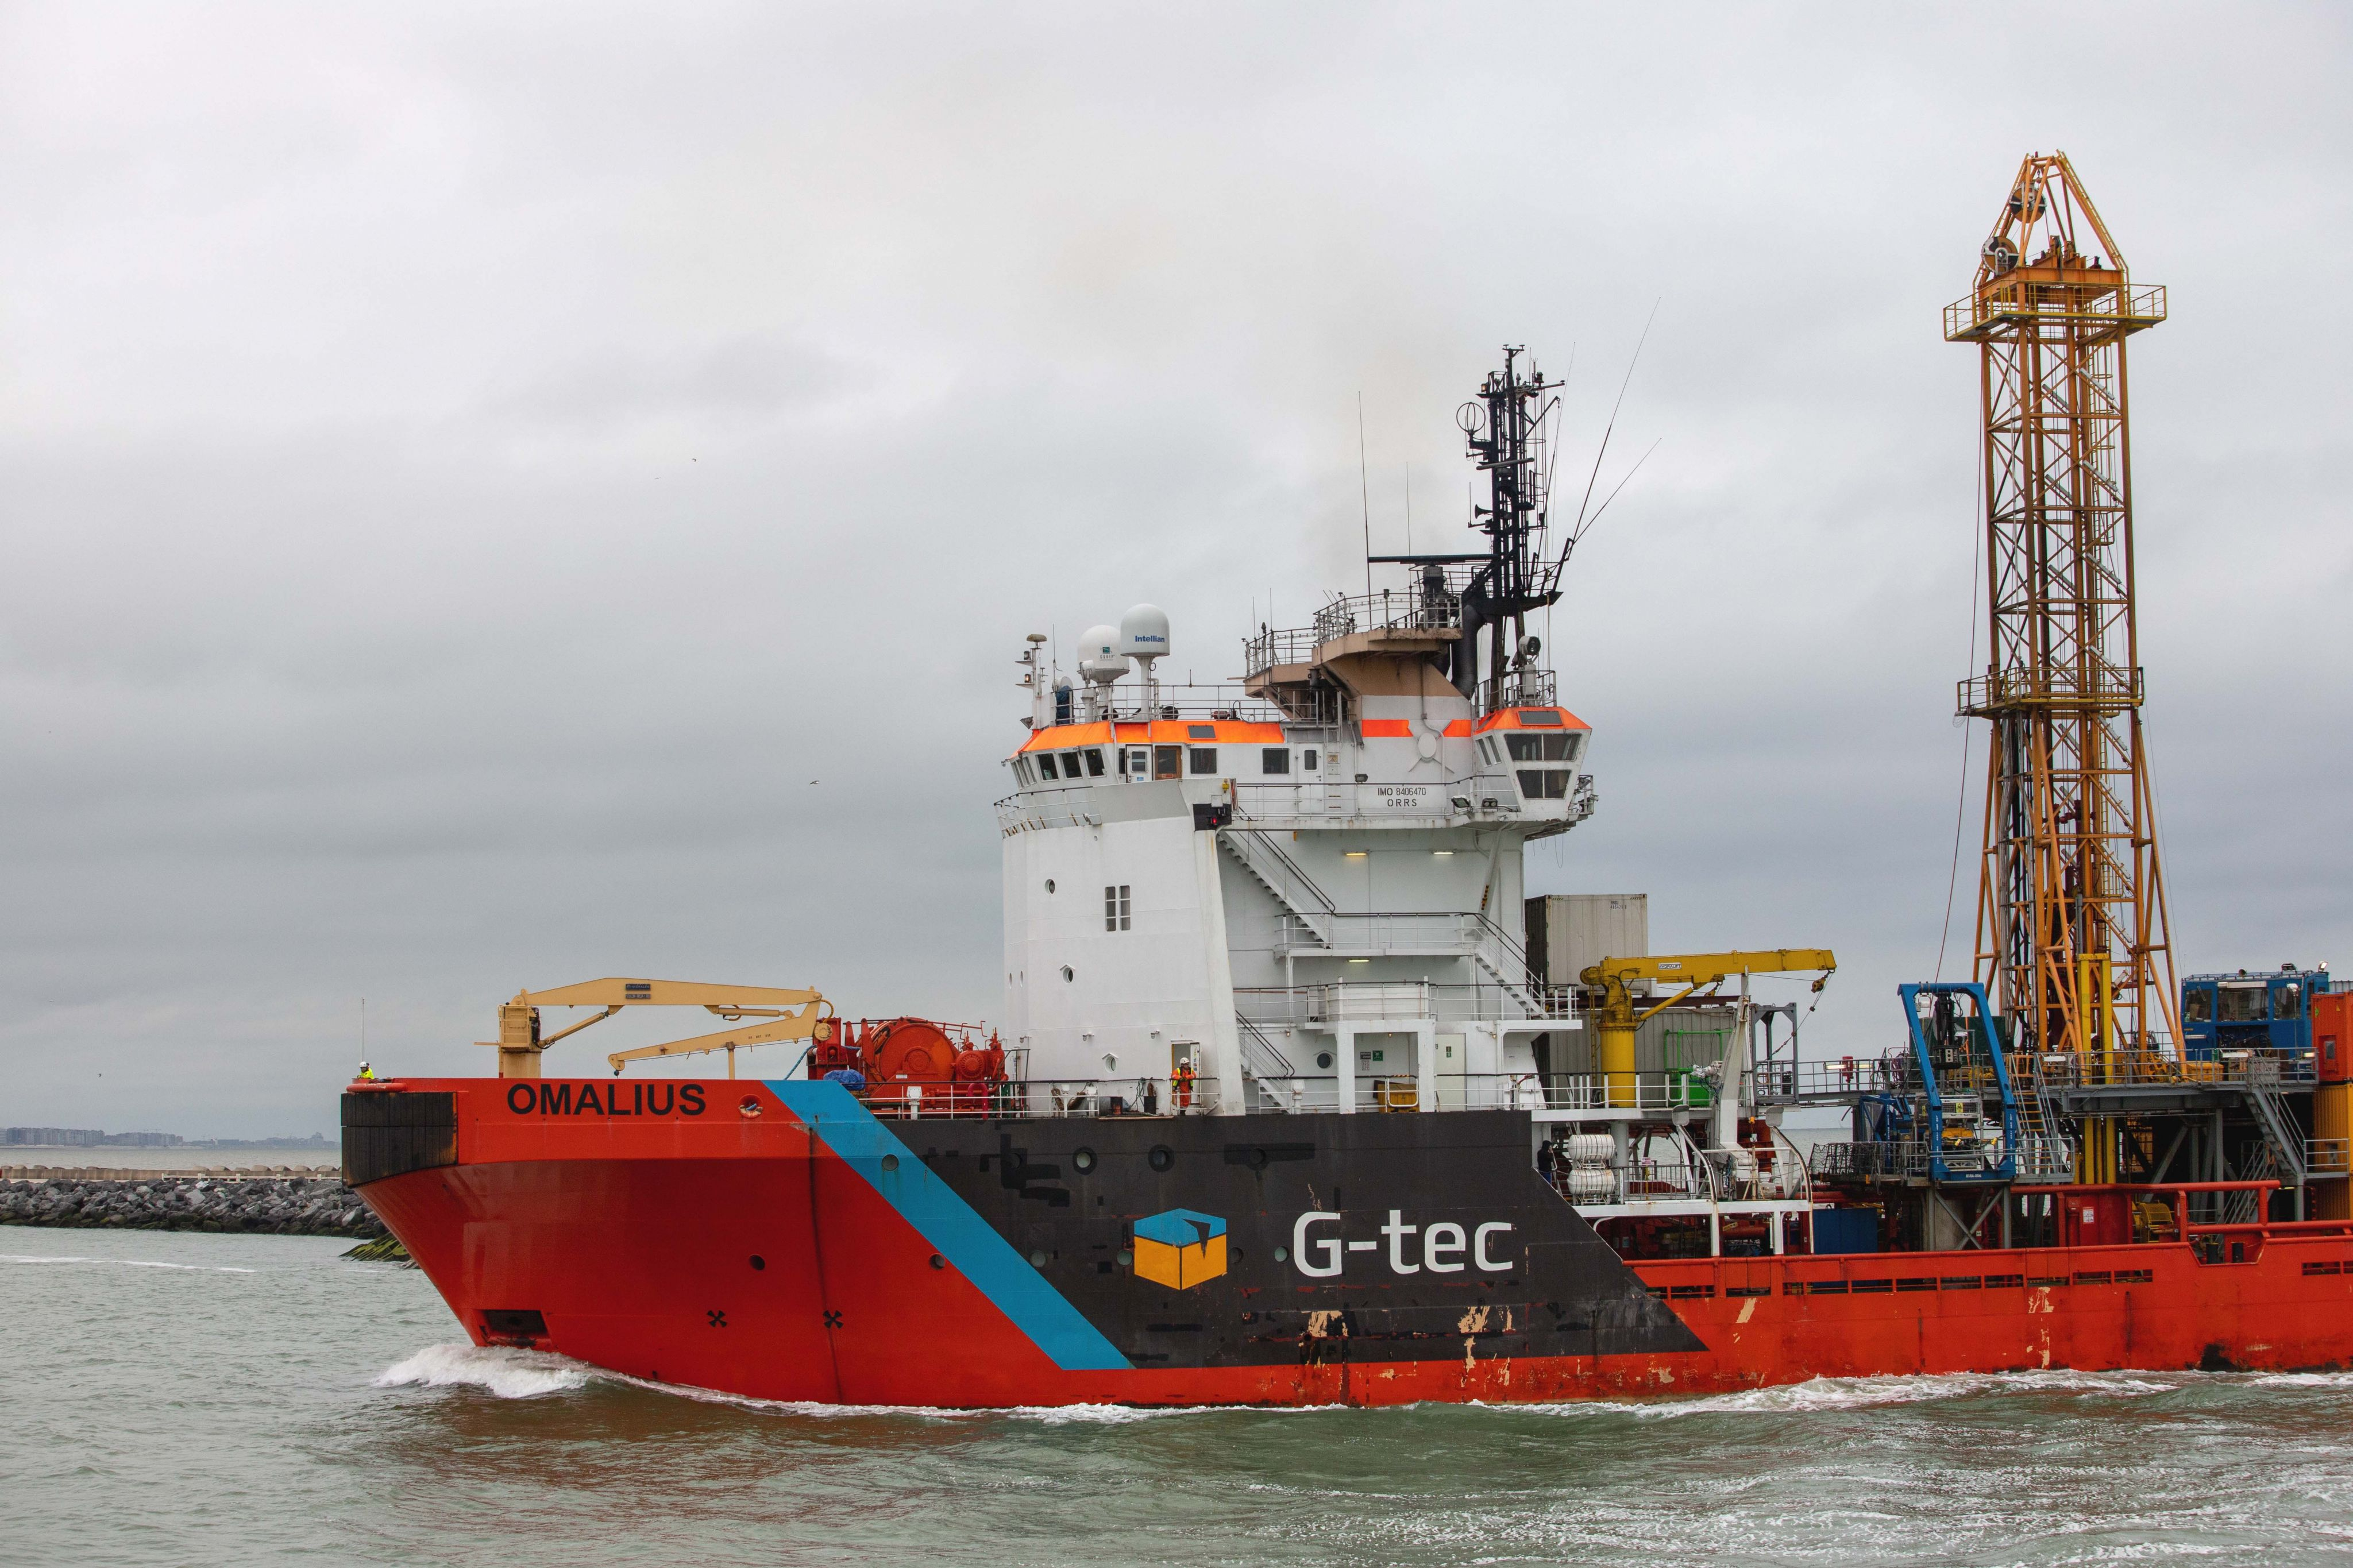 Omalius departed to UK to work for Ørsted on Hornsea Four Geotechnical Project